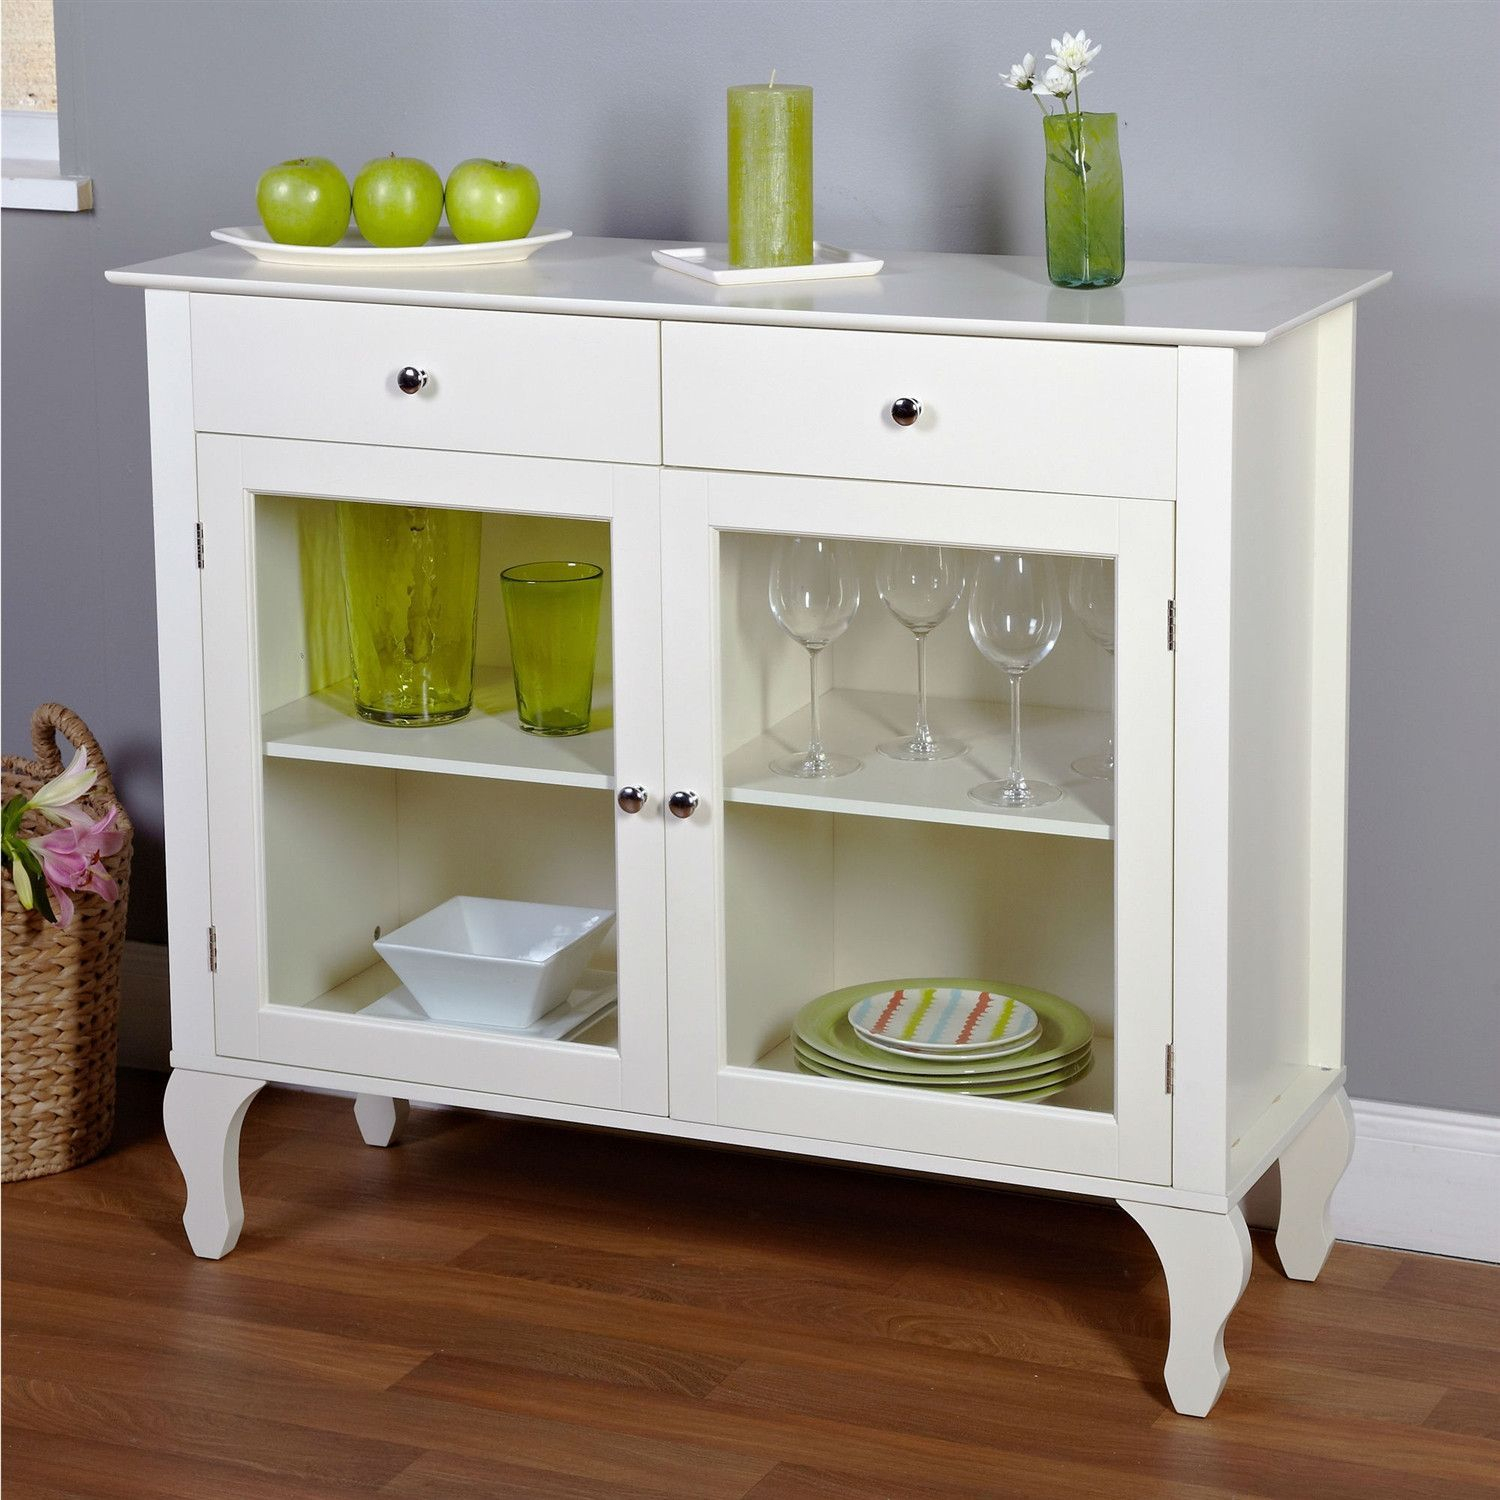 Antique White Sideboard Buffet Console Table With Glass Regarding Simple Living Layla Black Buffets (View 6 of 30)